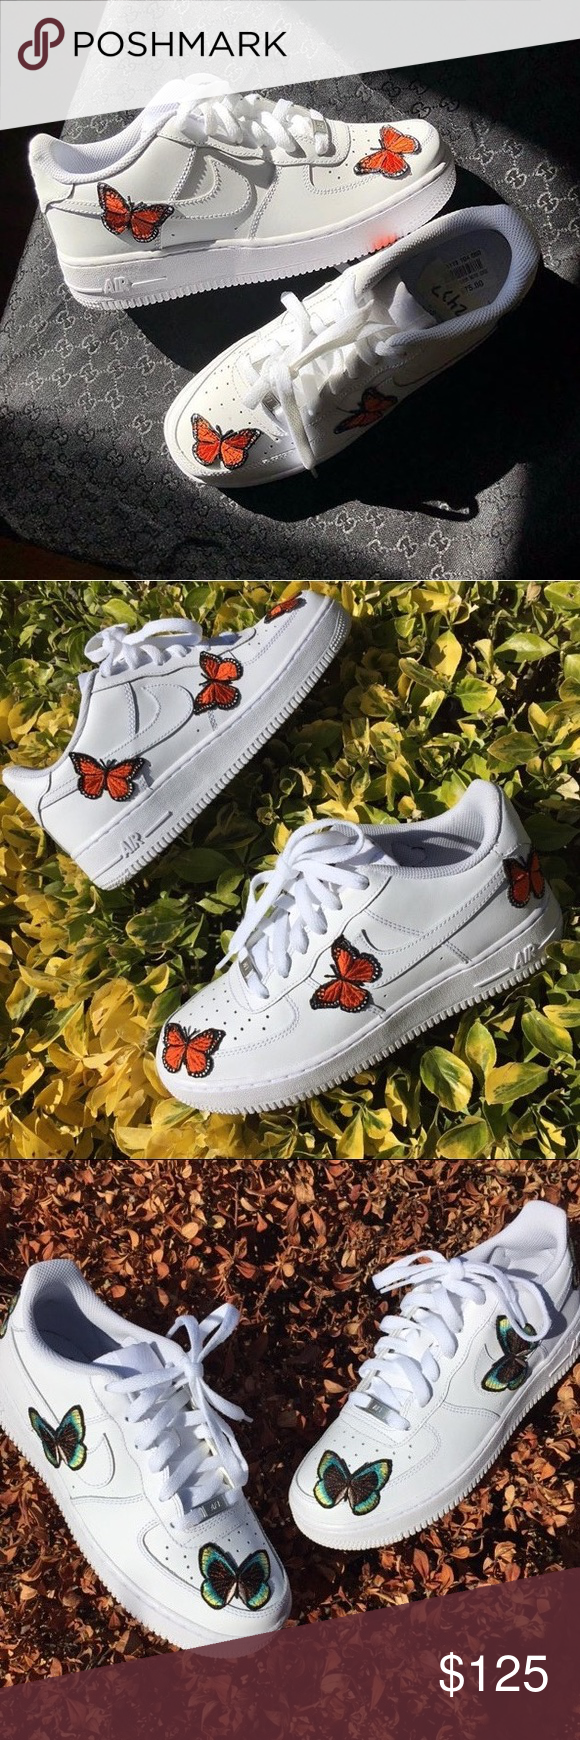 2956a6029 Custom Butterfly Embroidered Nike Air Force 1 Low available in size 7  (women's) 7.5 (women's) 8 (women's) 10 (men's) Nike Shoes Sneakers